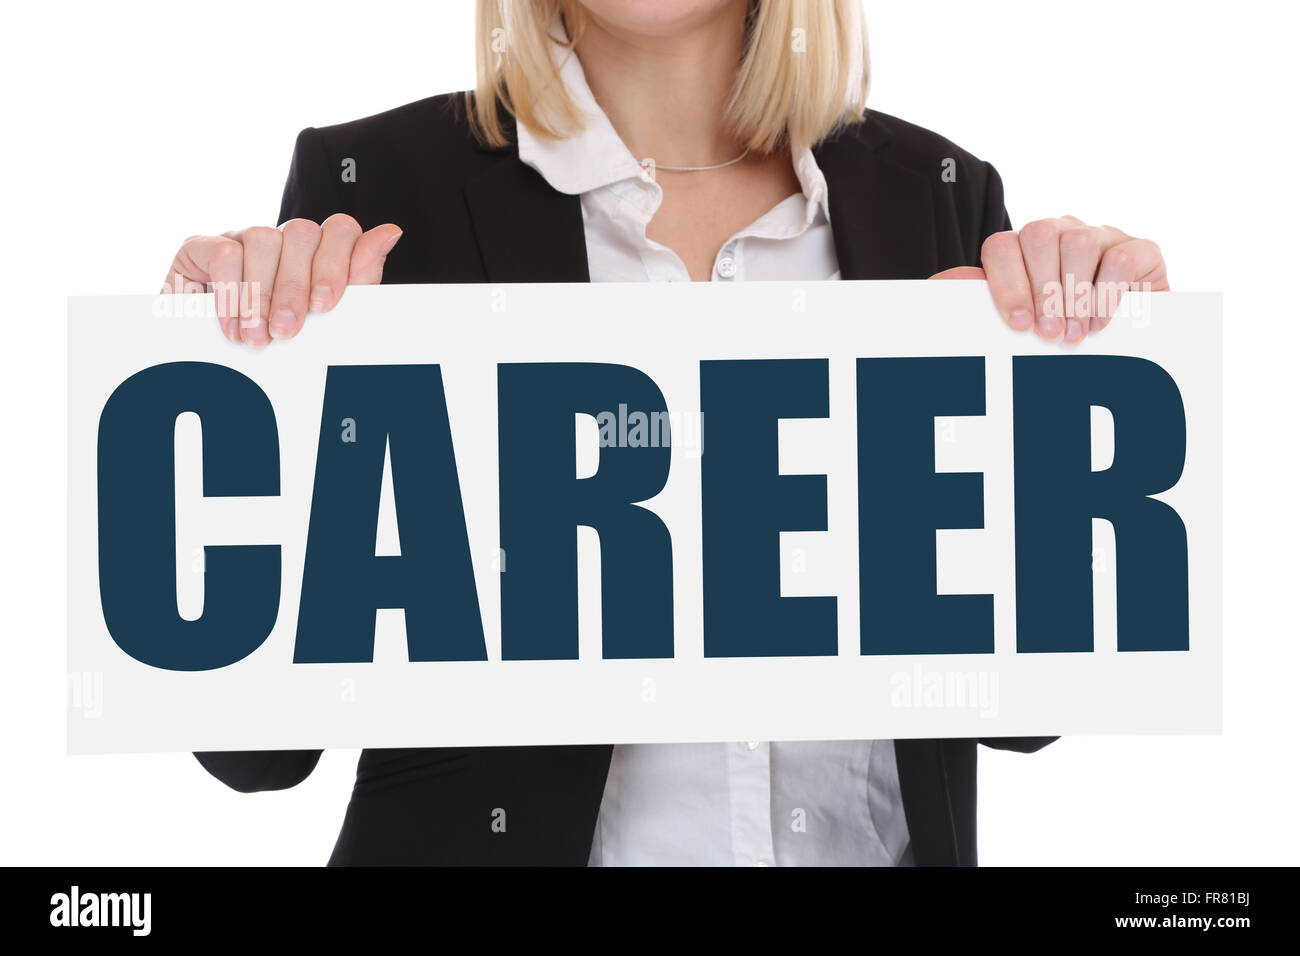 Career opportunities goals success successful and development business concept - Stock Image